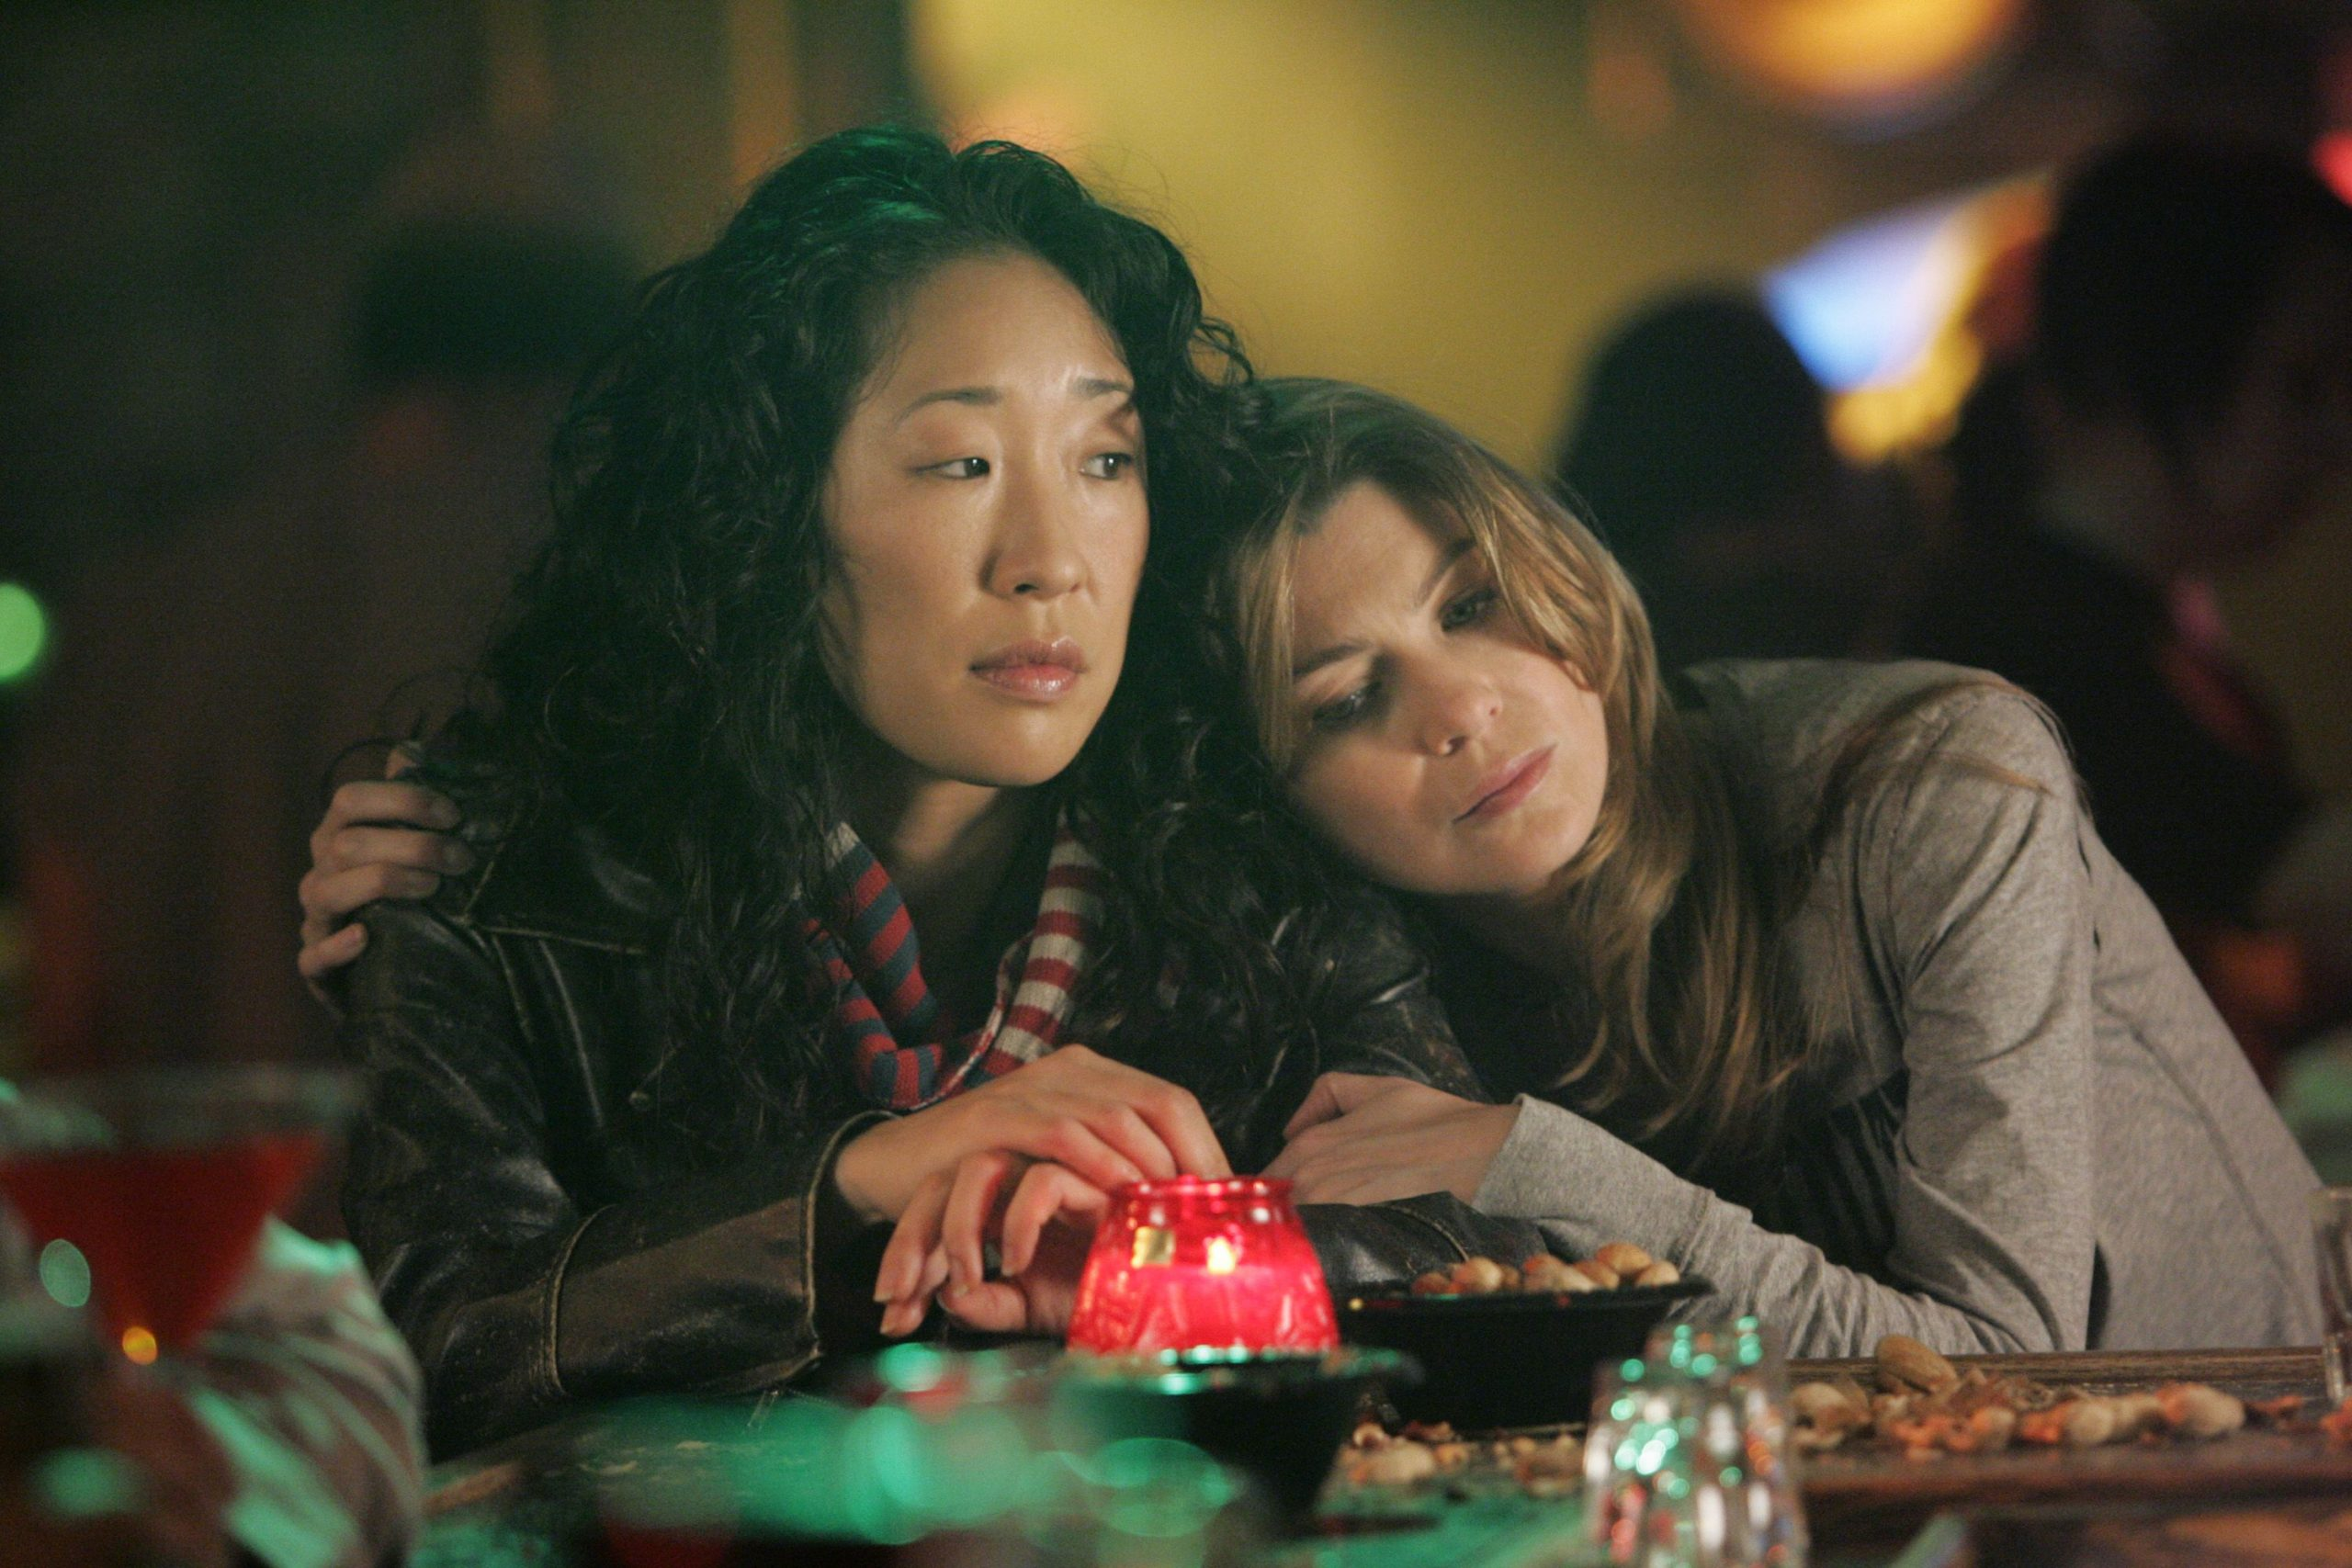 Christina and Meredith are the key friendship in Grey's Anatomy.